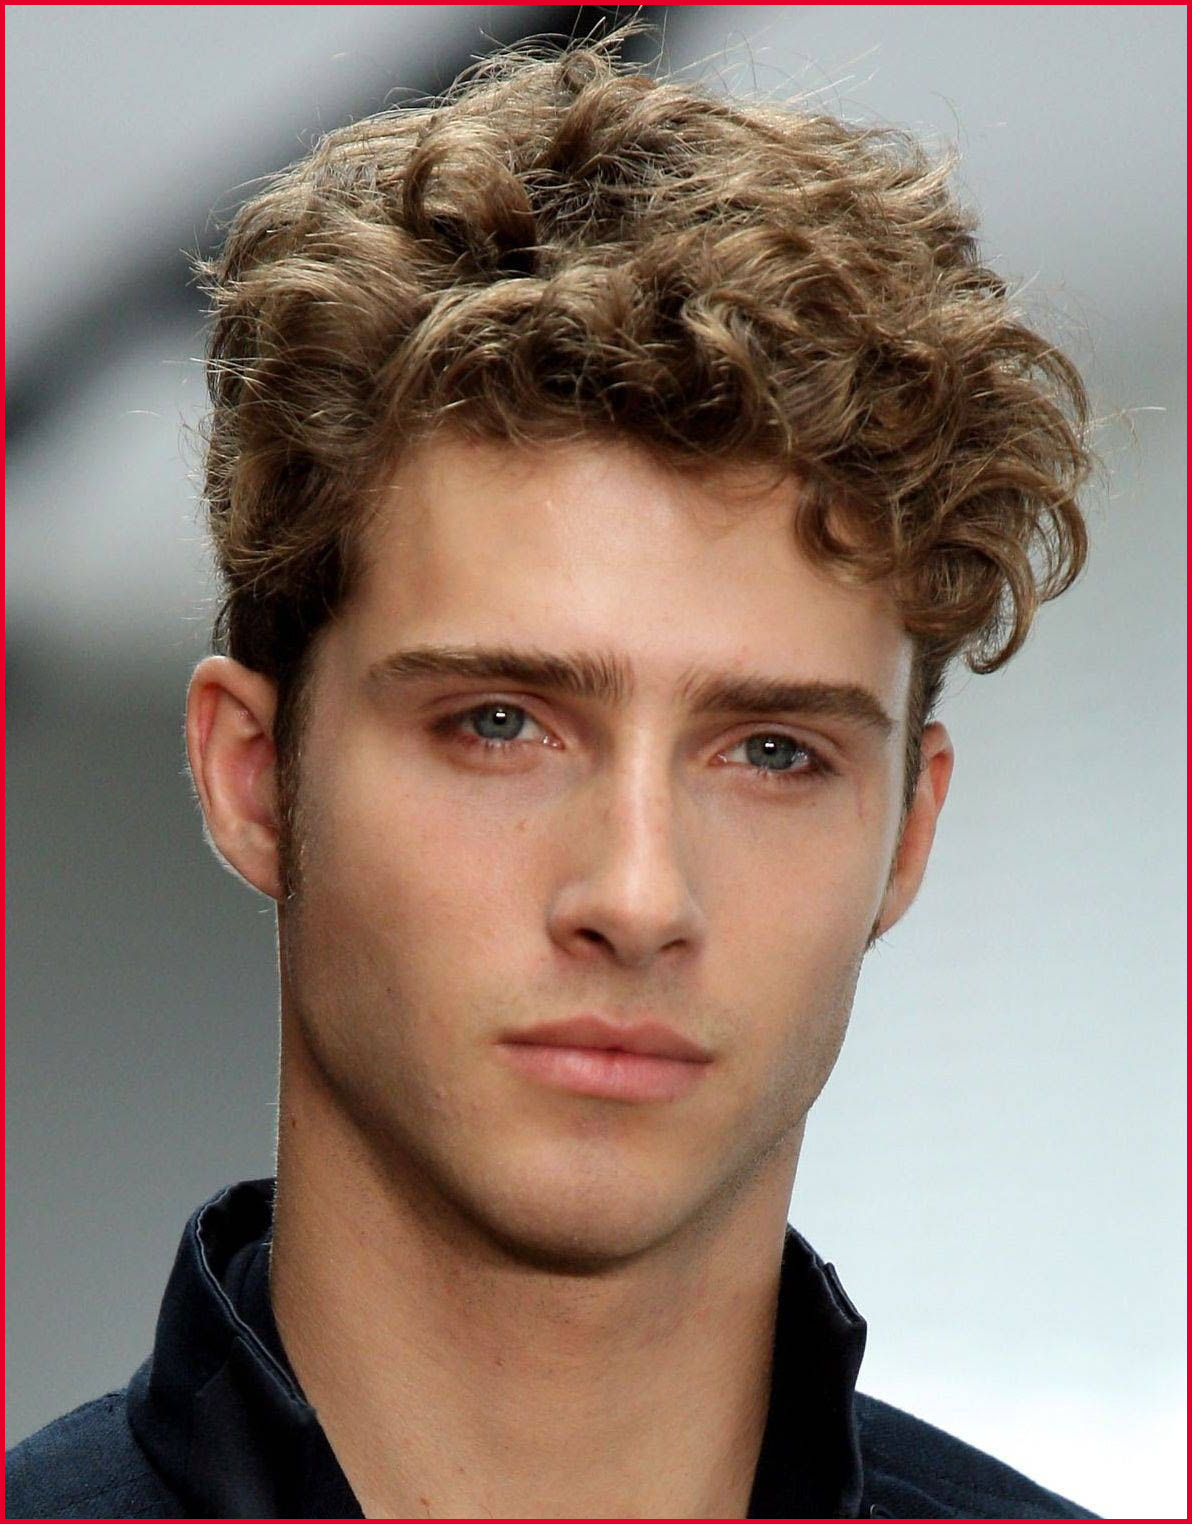 Nice Haircuts 75156 Amusing Hairstyles For Thin Curly Hair Men 7 pertaining to Short Haircuts For Thin Curly Hair